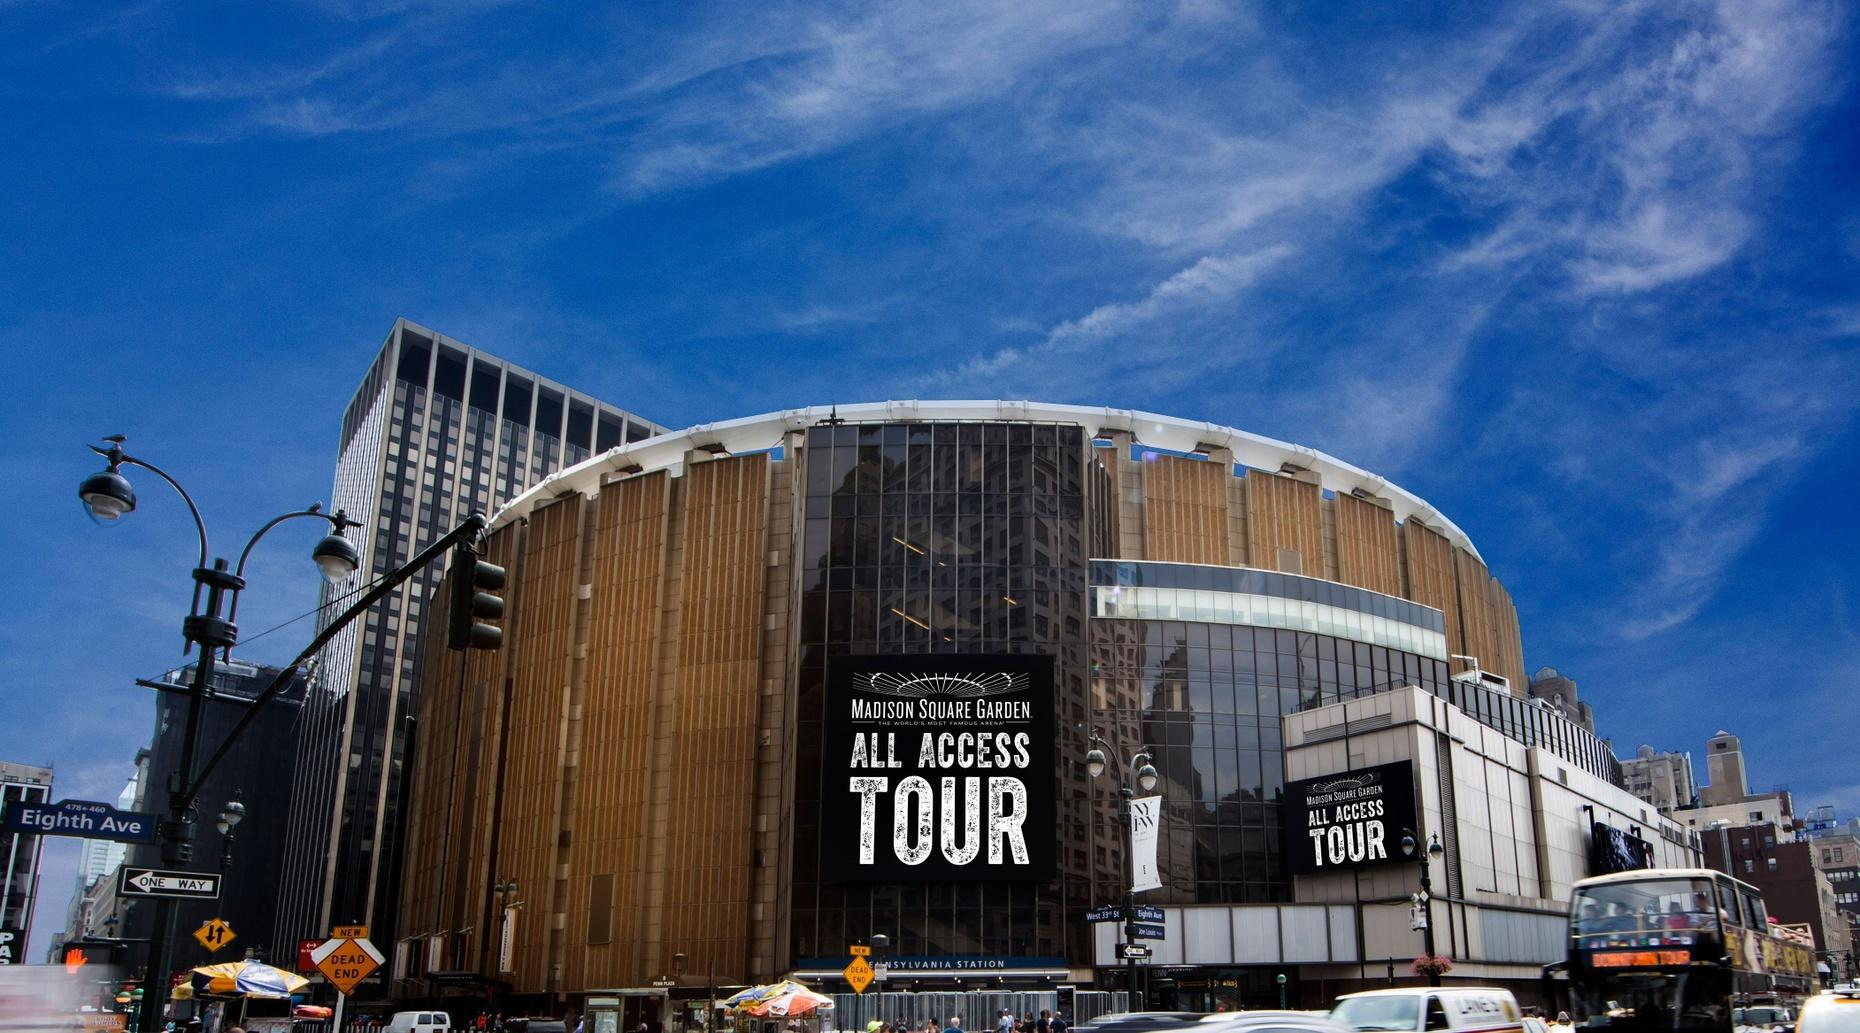 All-Access Madison Square Garden Tour in New York City